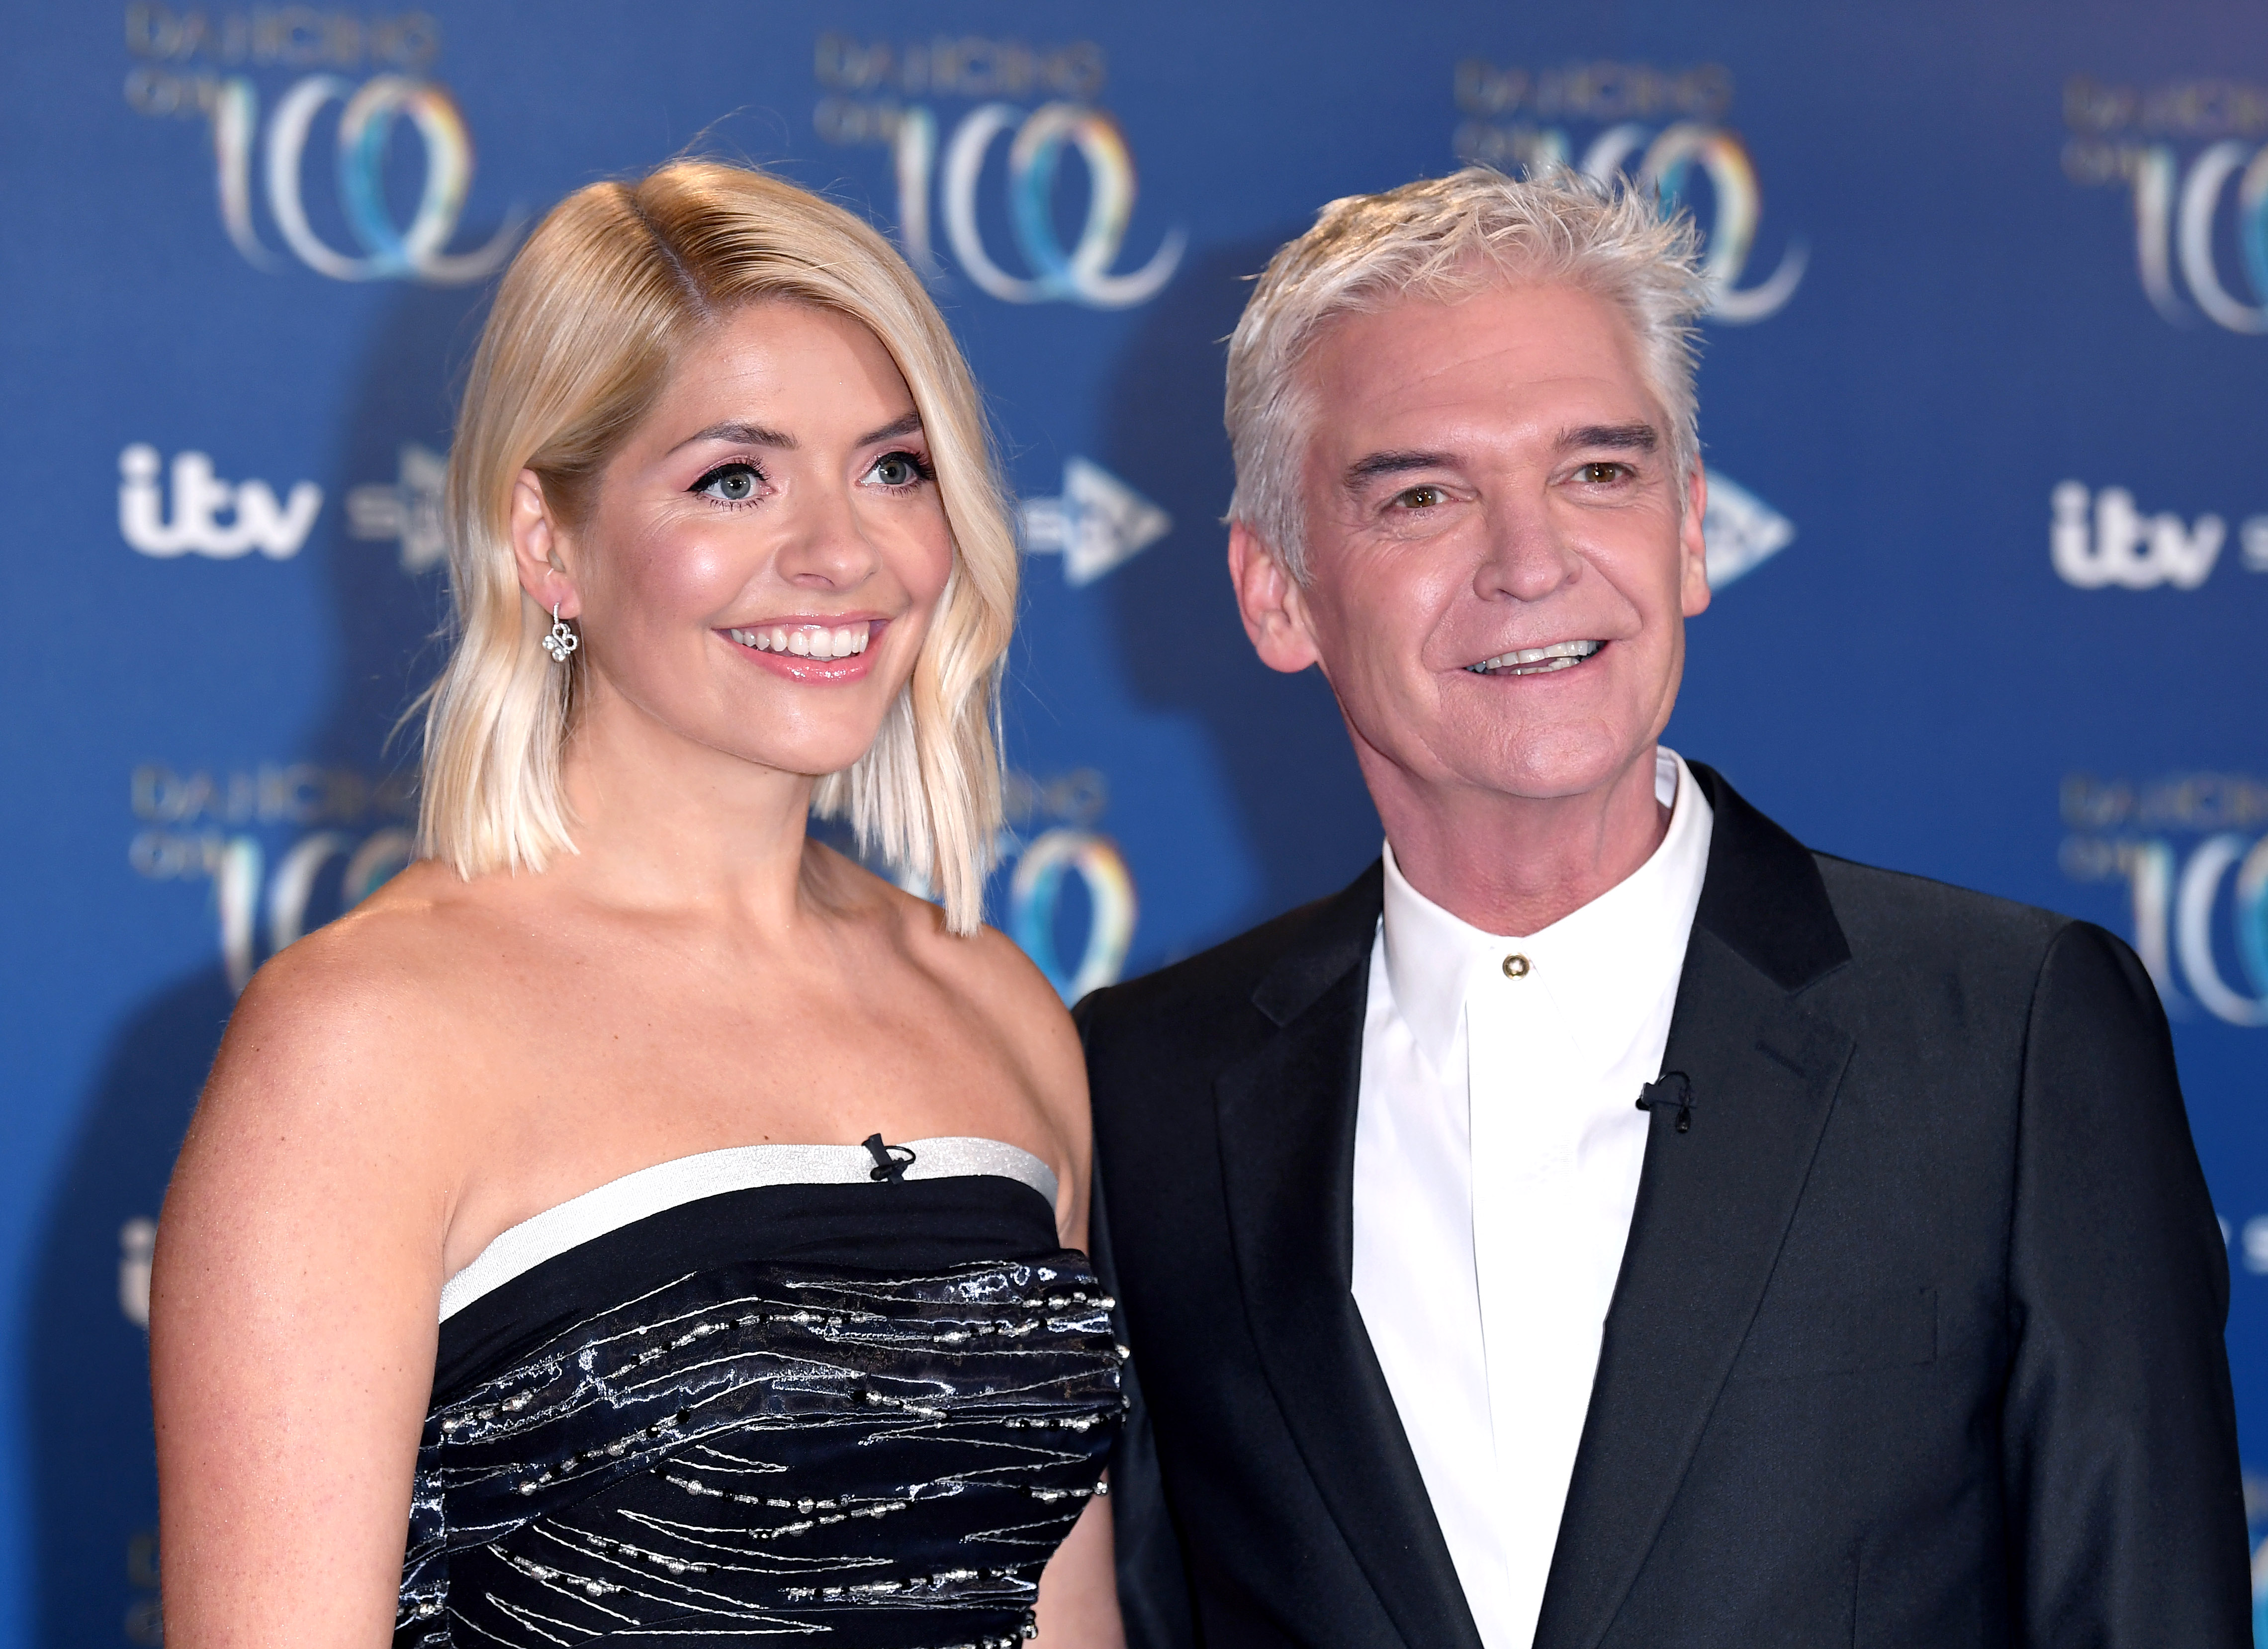 Holly Willoughby fights back tears over Phillip Schofield amid rift rumours